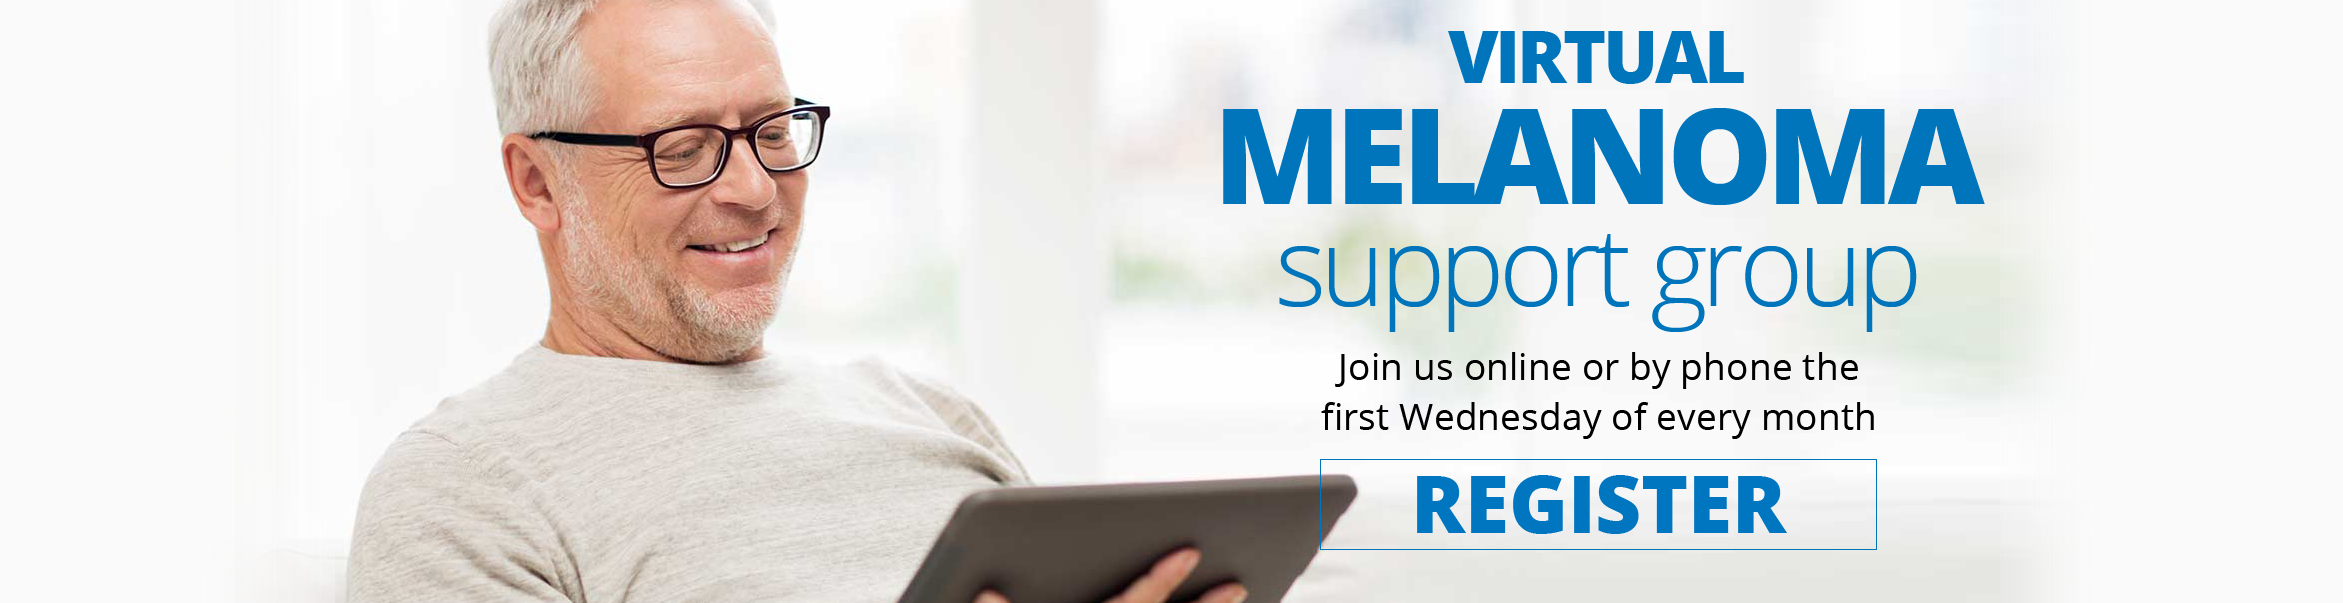 Banner promoting our upcoming September 2nd Virtual Melanoma Support Group click on it to learn more